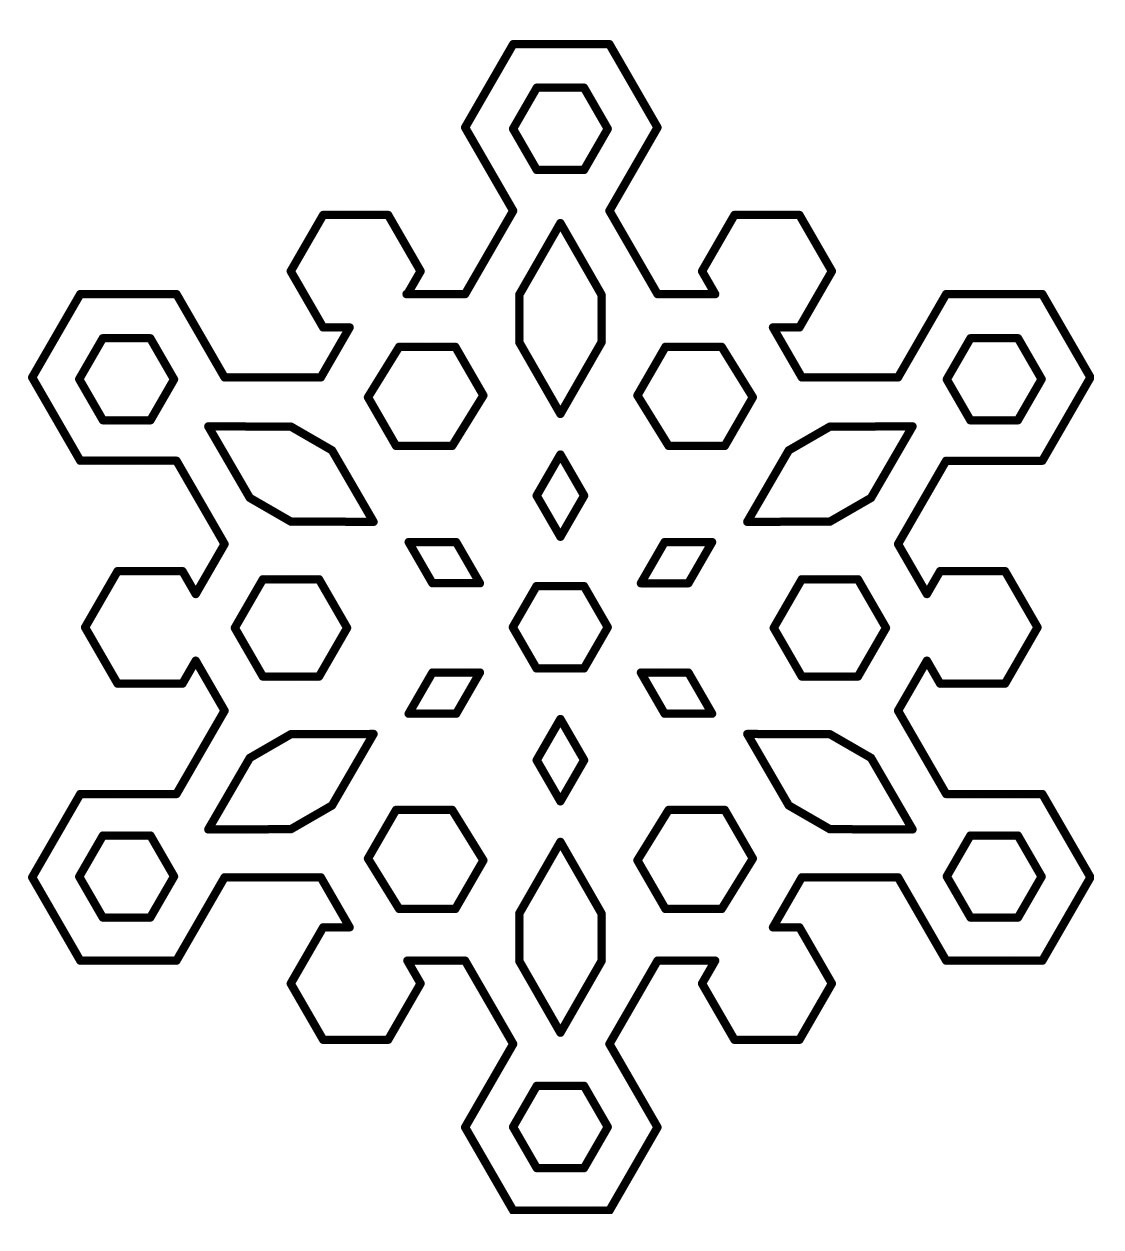 Snowflake_Coloring_Pages_01